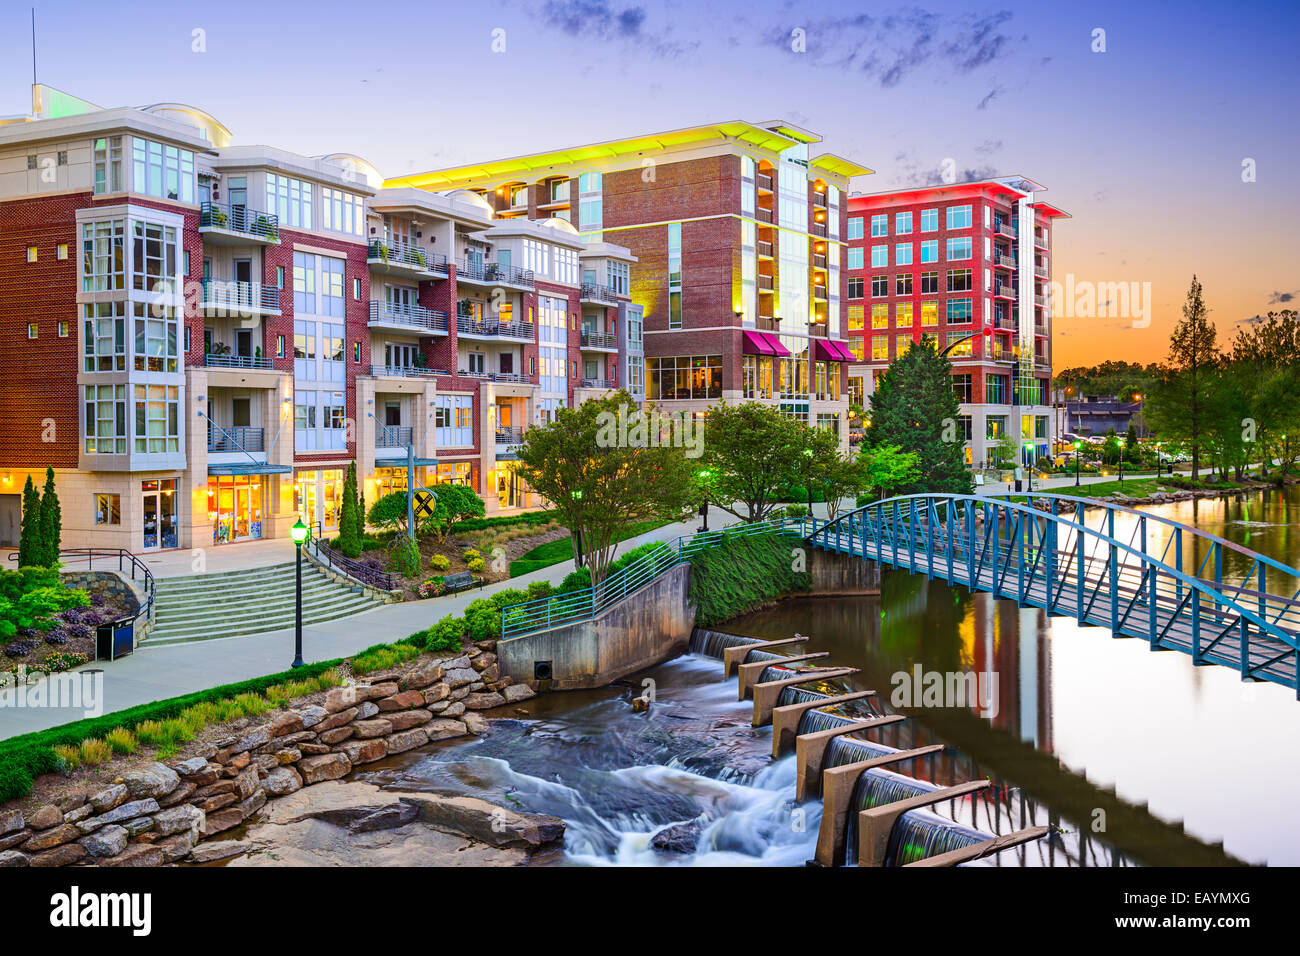 Greenville, South Carolina town cityscape - Stock Image